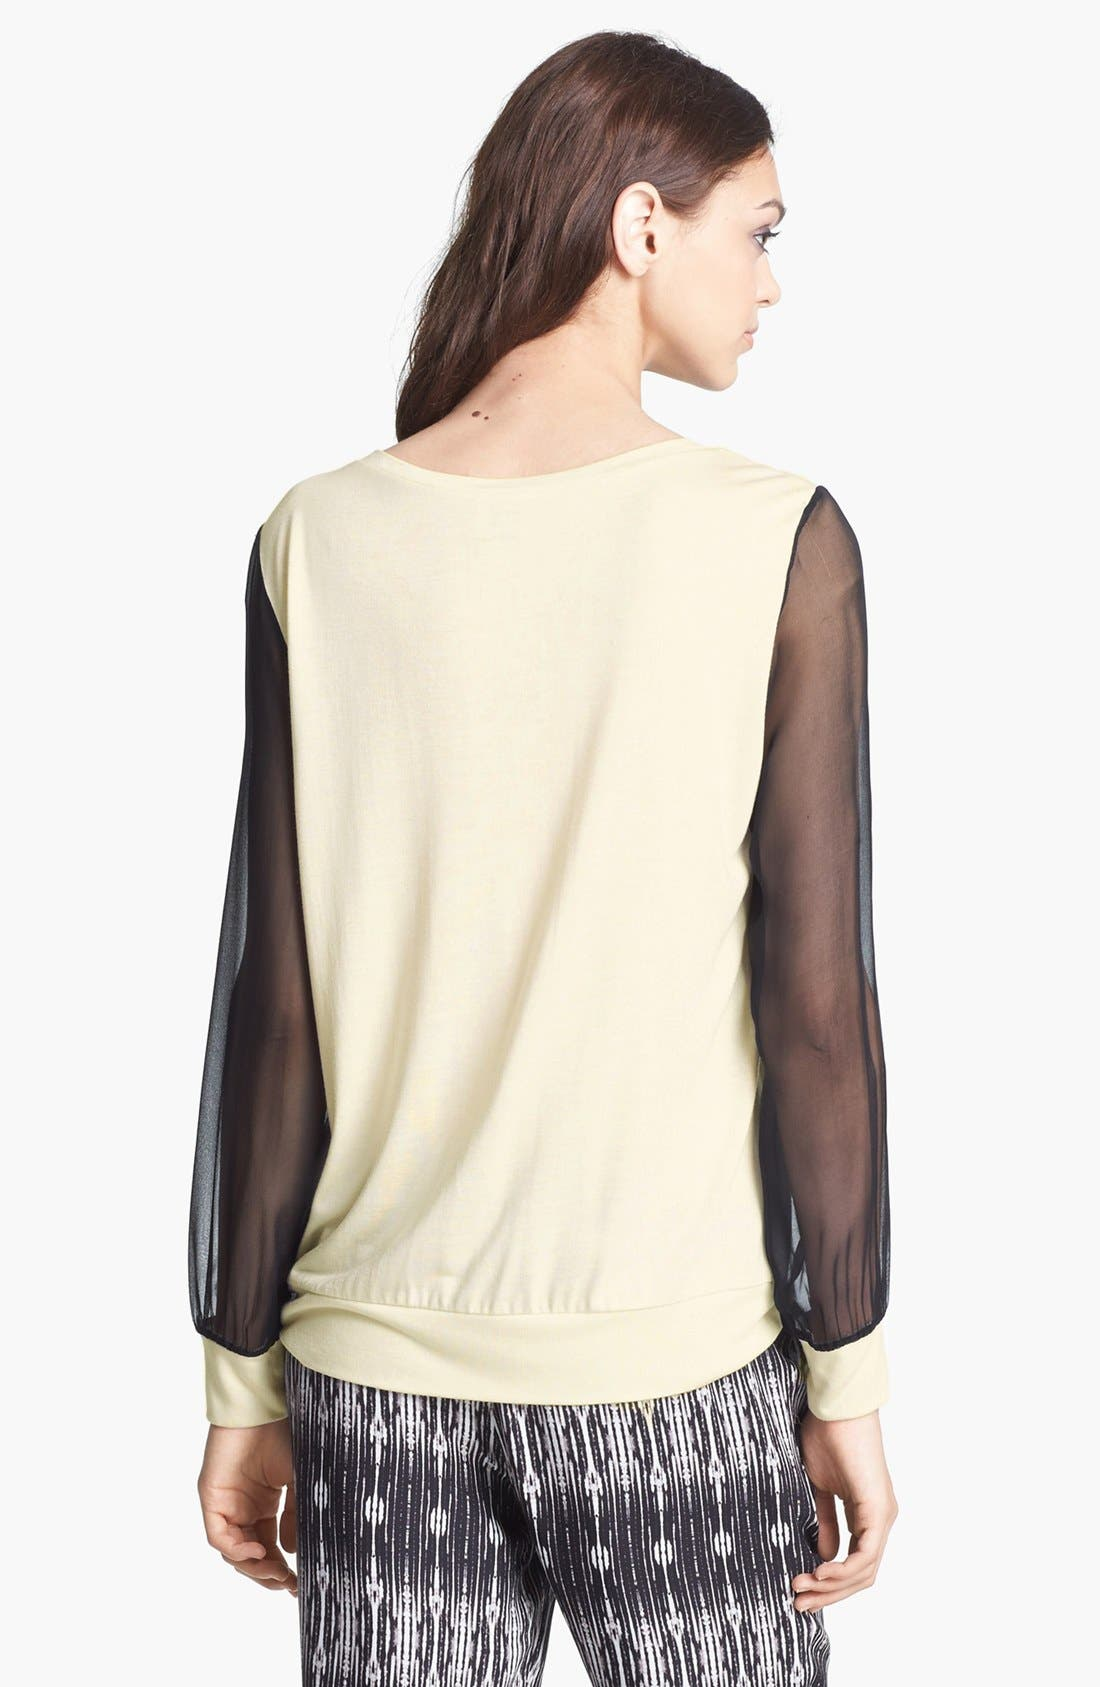 HAUTE HIPPIE,                             Chiffon Sleeve Sweatshirt,                             Alternate thumbnail 5, color,                             110